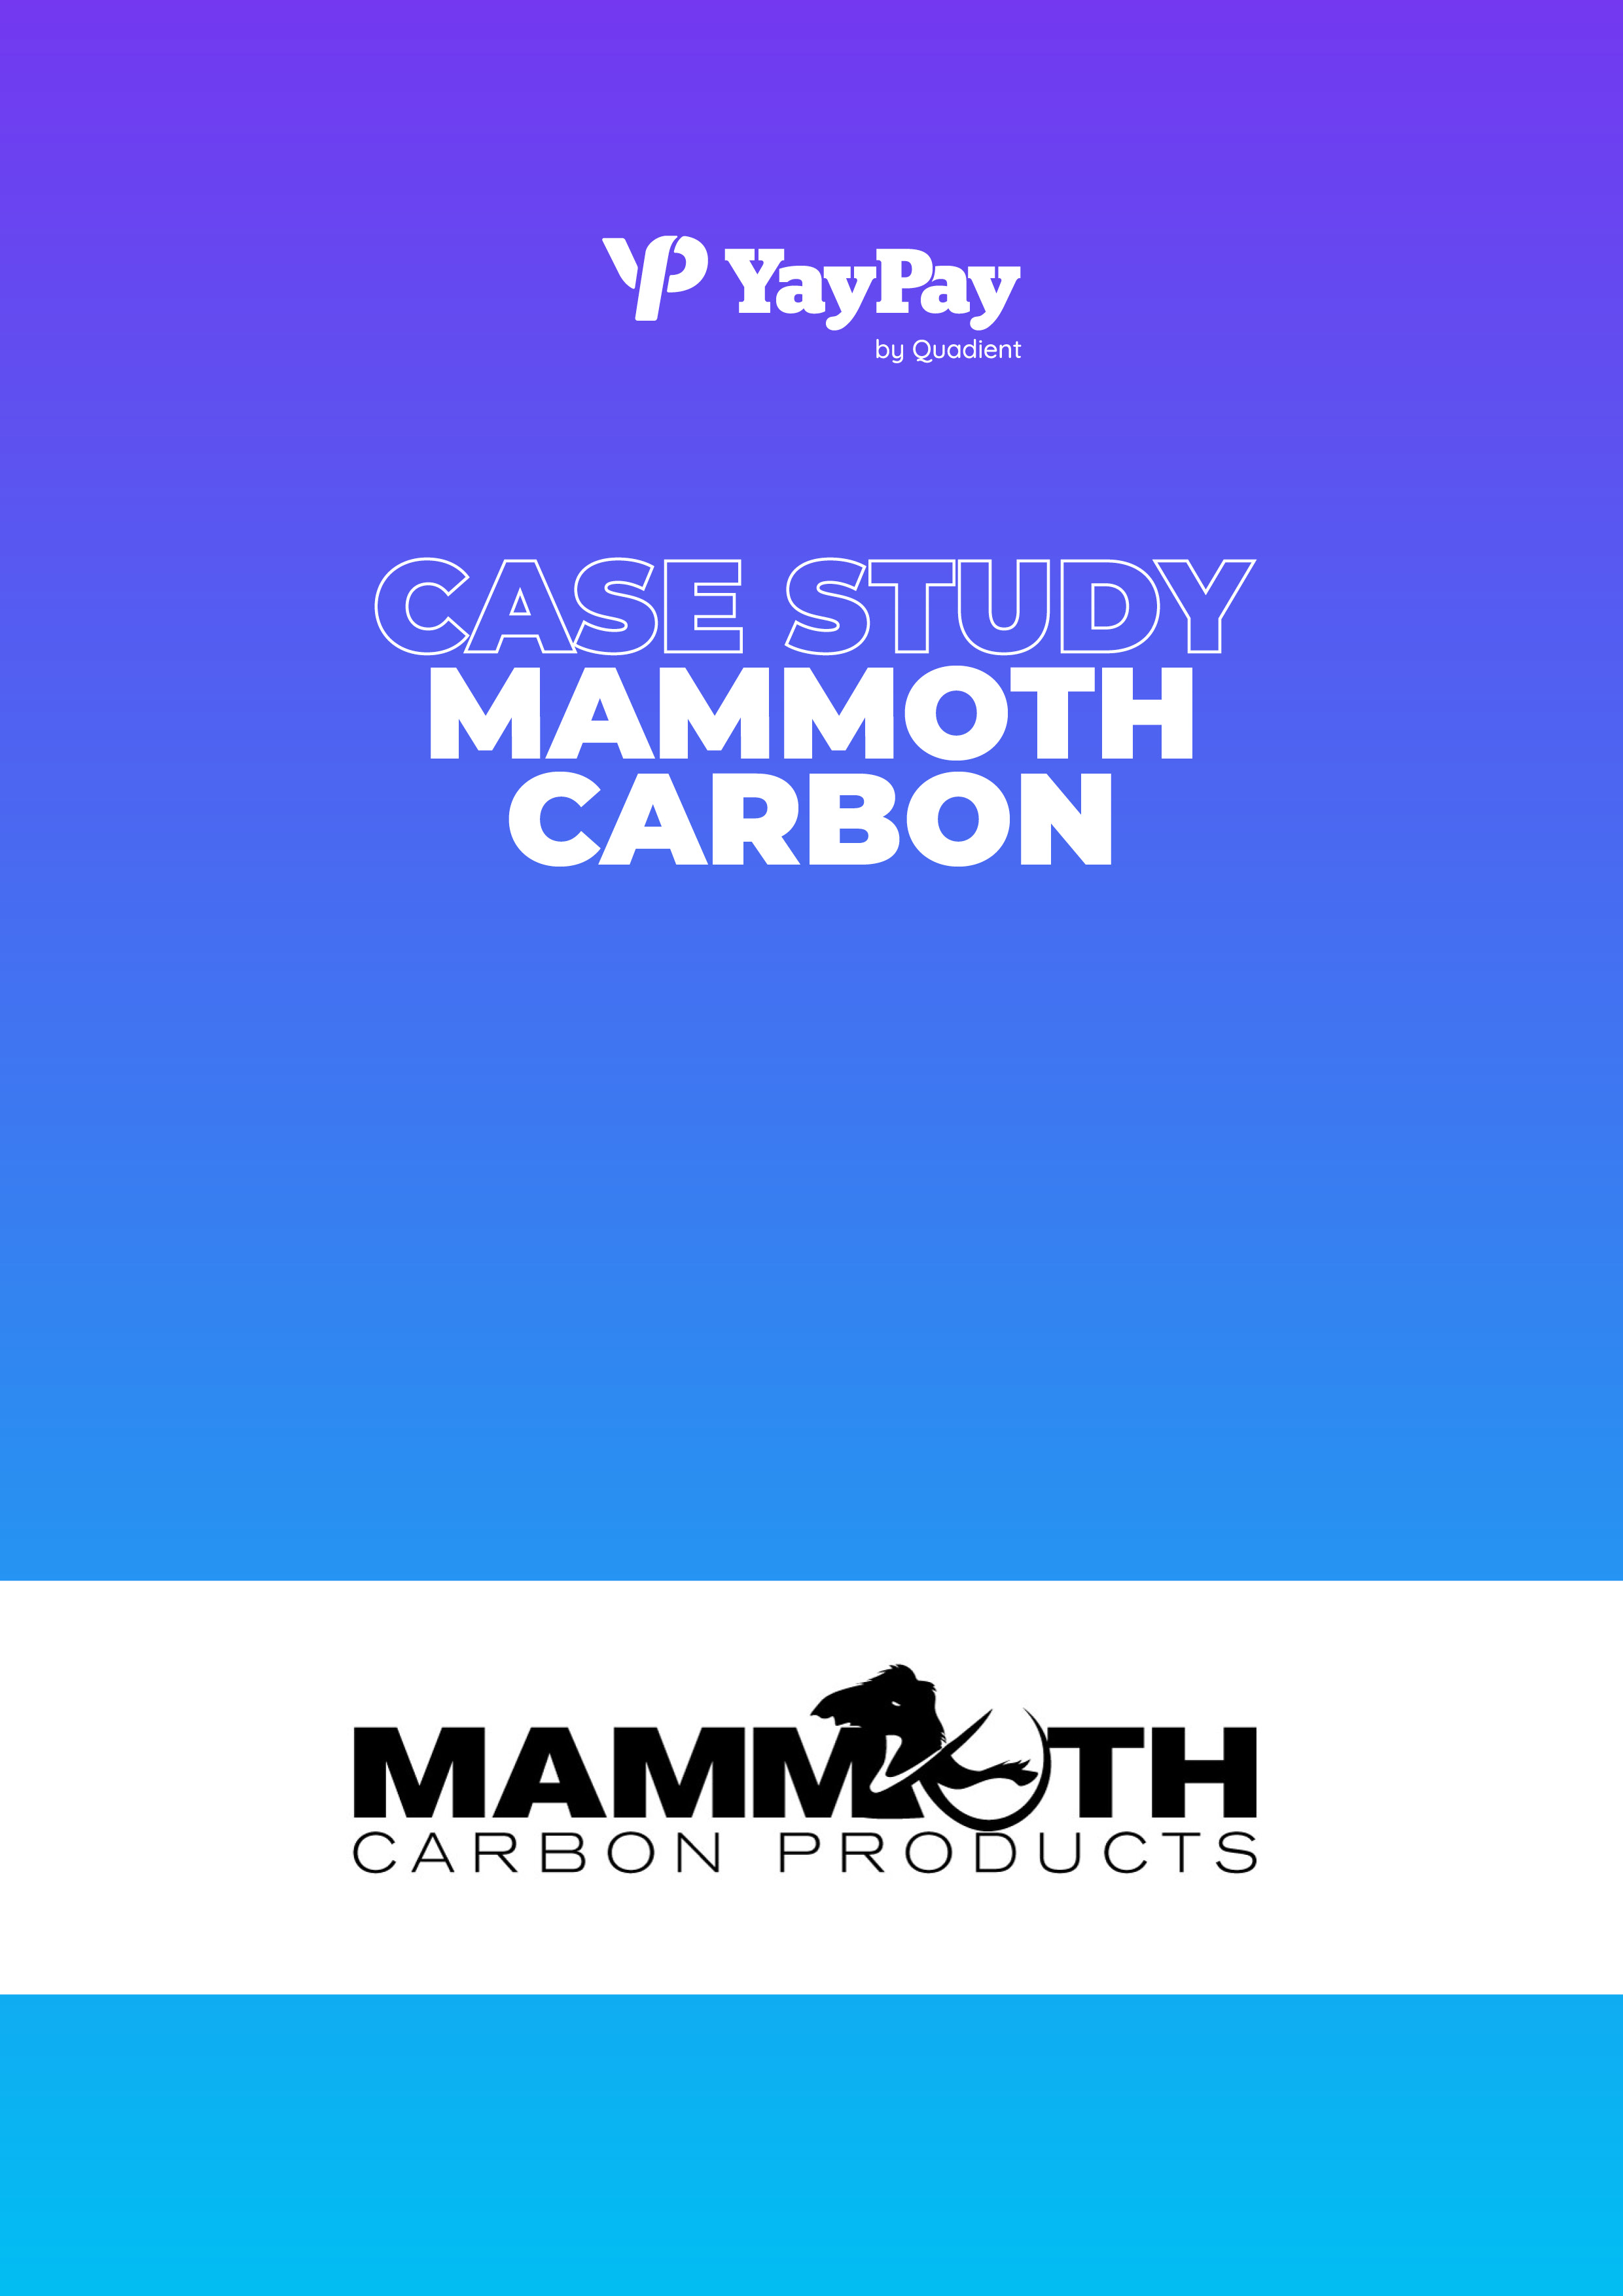 Case Study: Mammoth Carbon